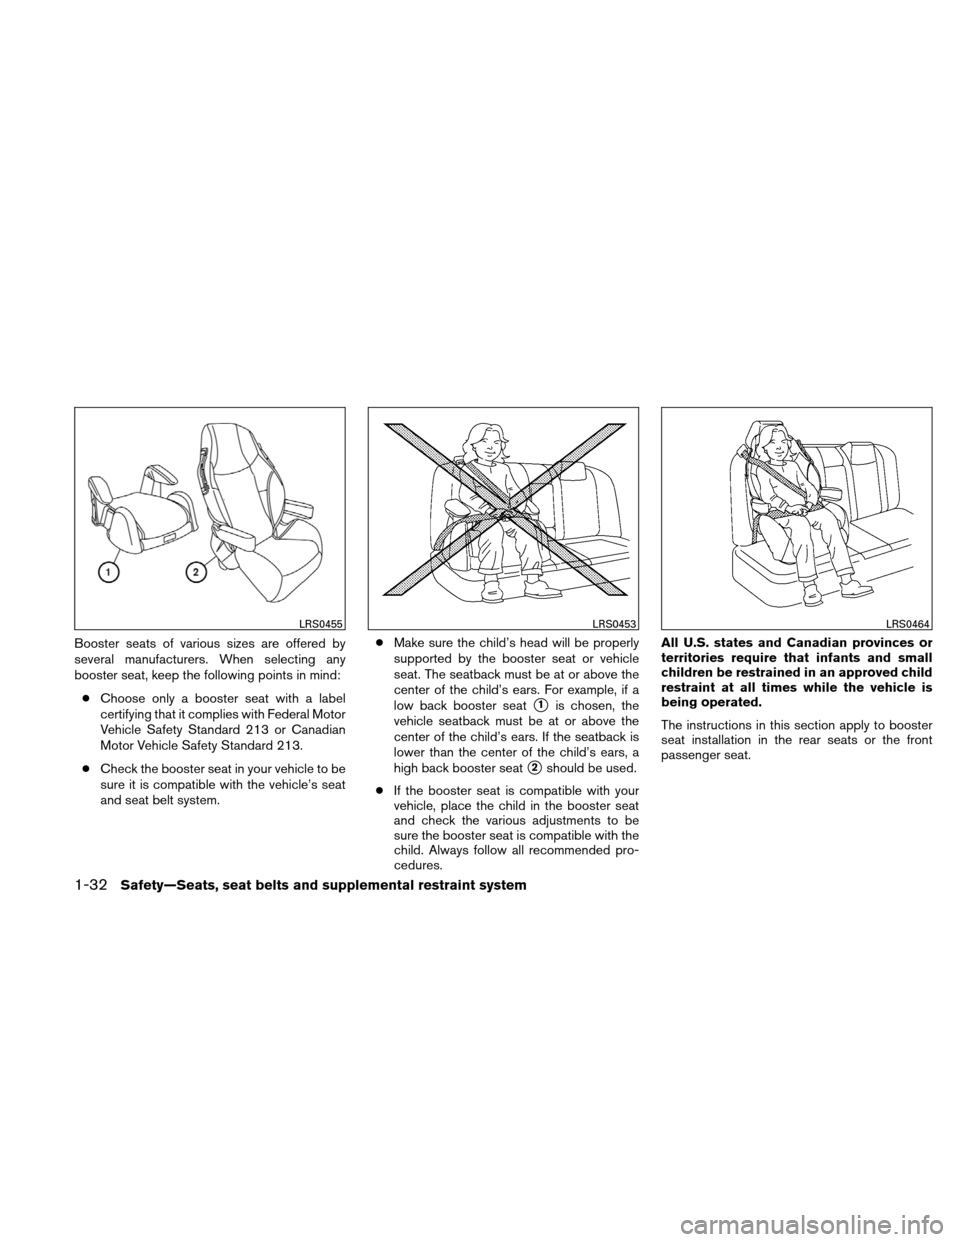 NISSAN ALTIMA HYBRID 2010 L32A / 4.G Owners Manual, Page 61